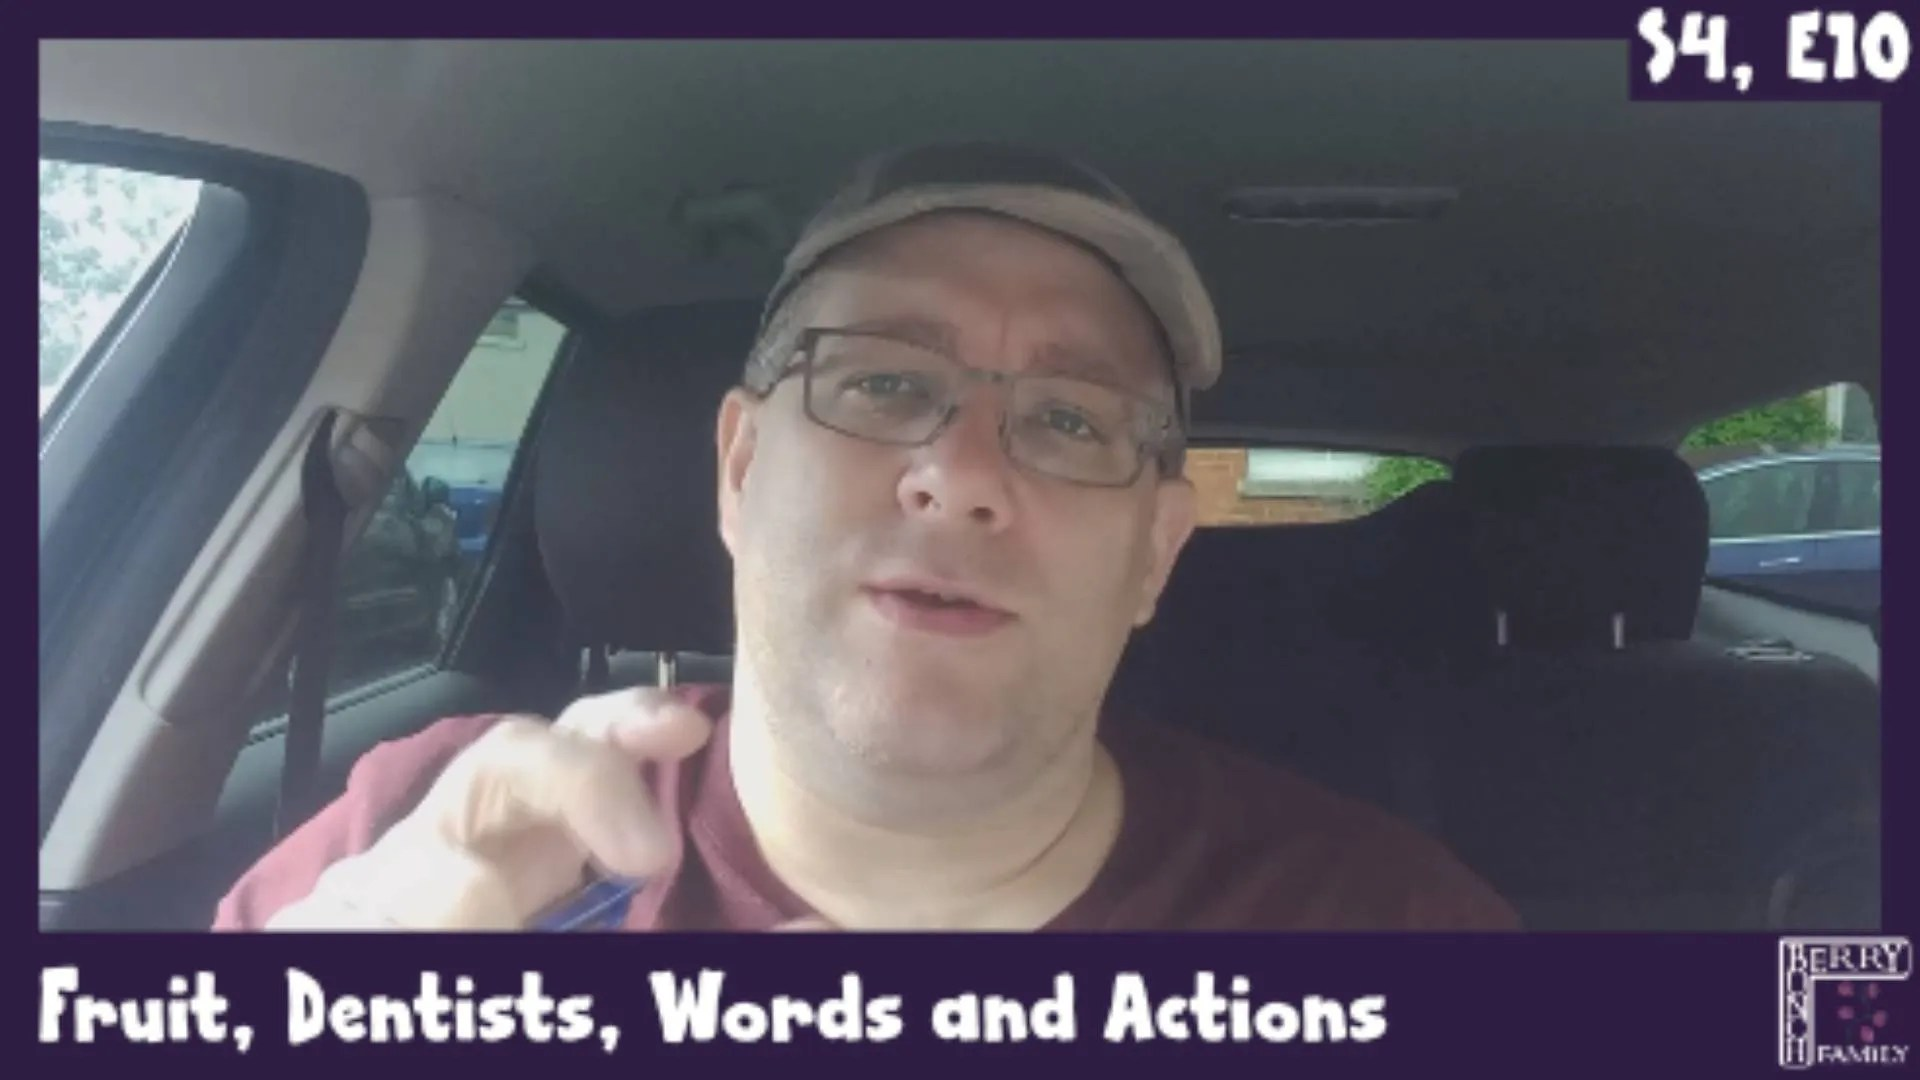 Andy B 2 Minute Video, Fruit, Dentists, Words and Actions, S4, E10